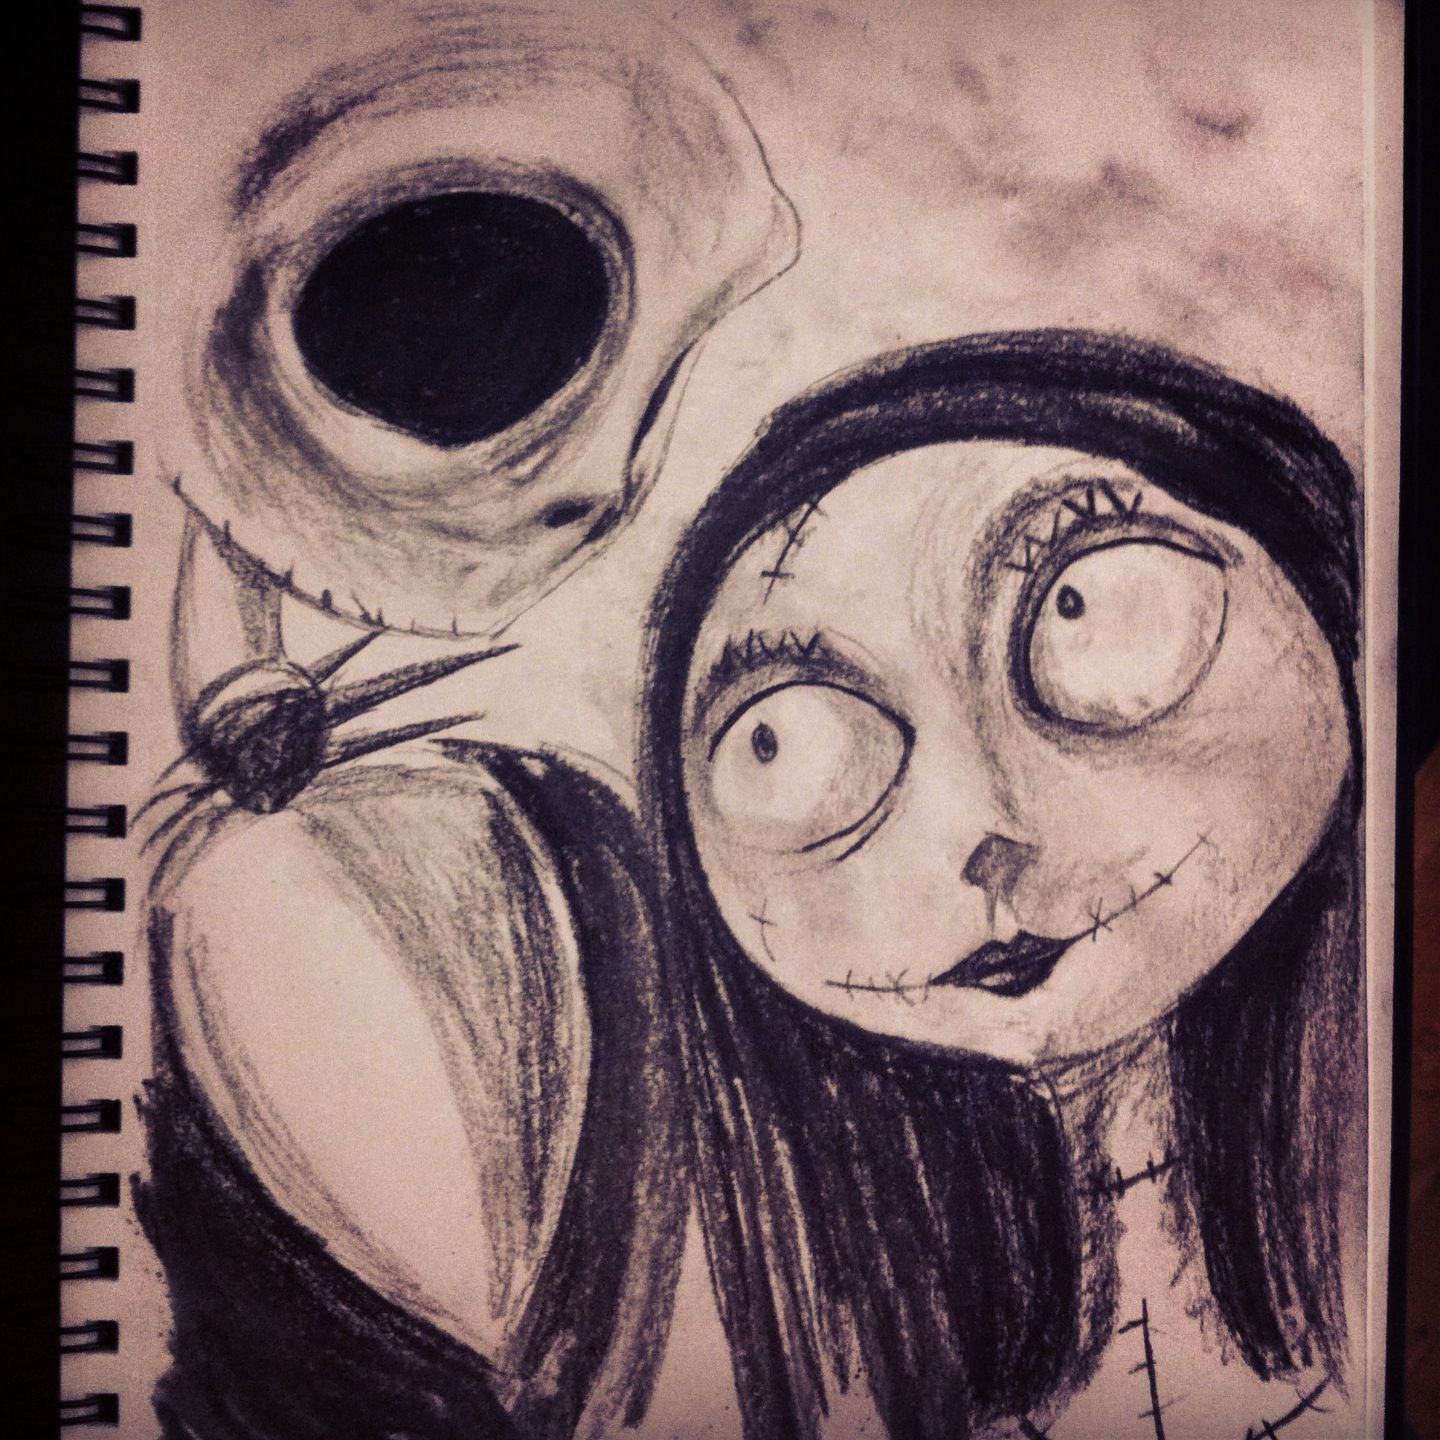 Charcoal sketch of Jack and Sally. The Nightmare Before Christmas ...